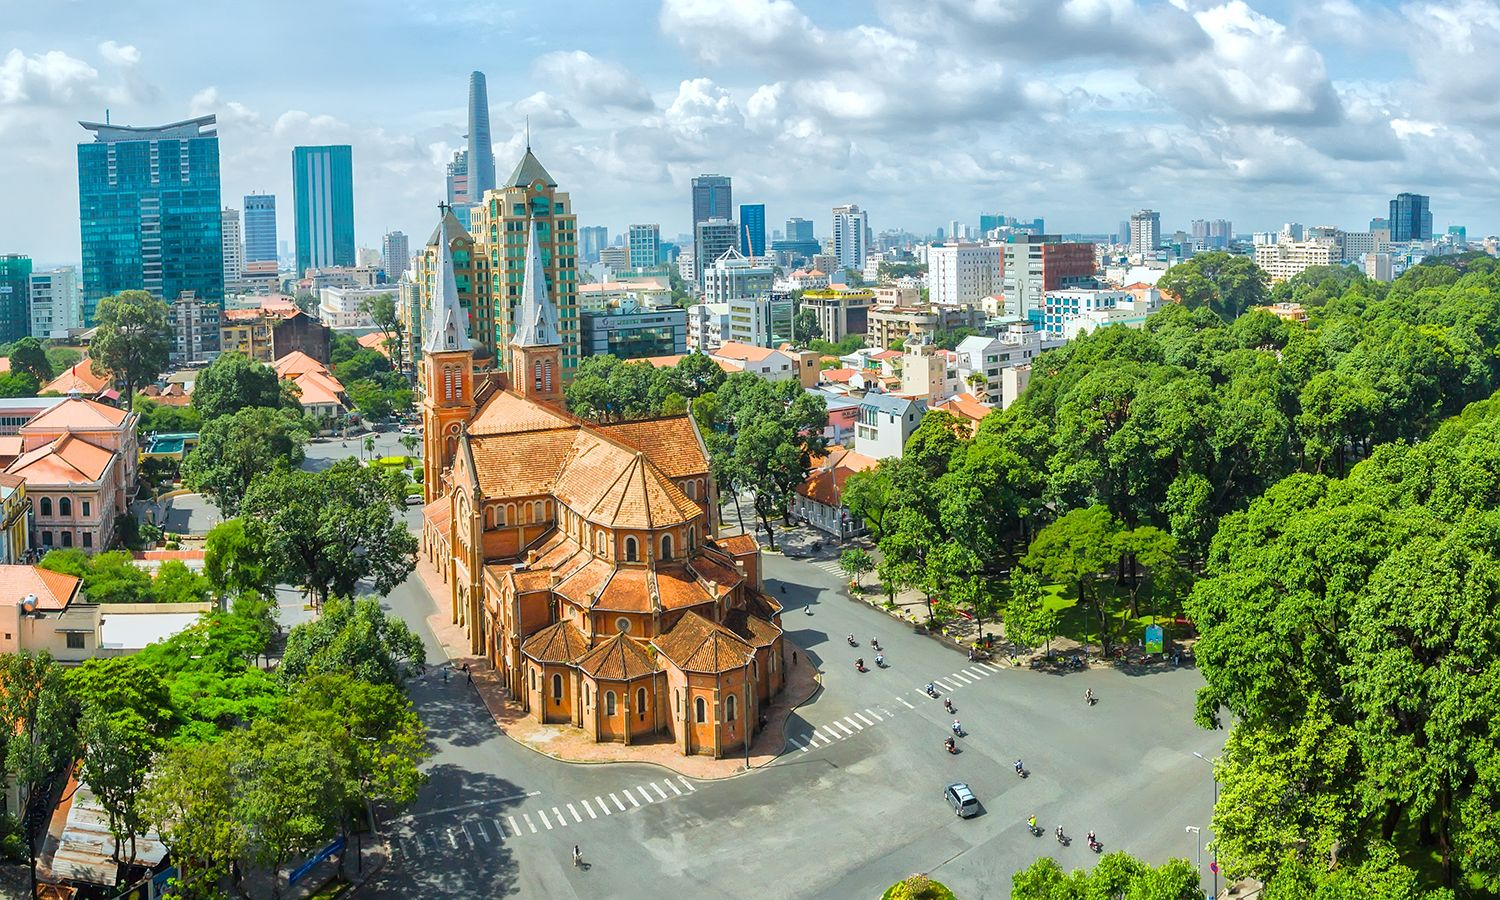 The Best Places to Eat, Shop and Stay in Ho Chi Minh City